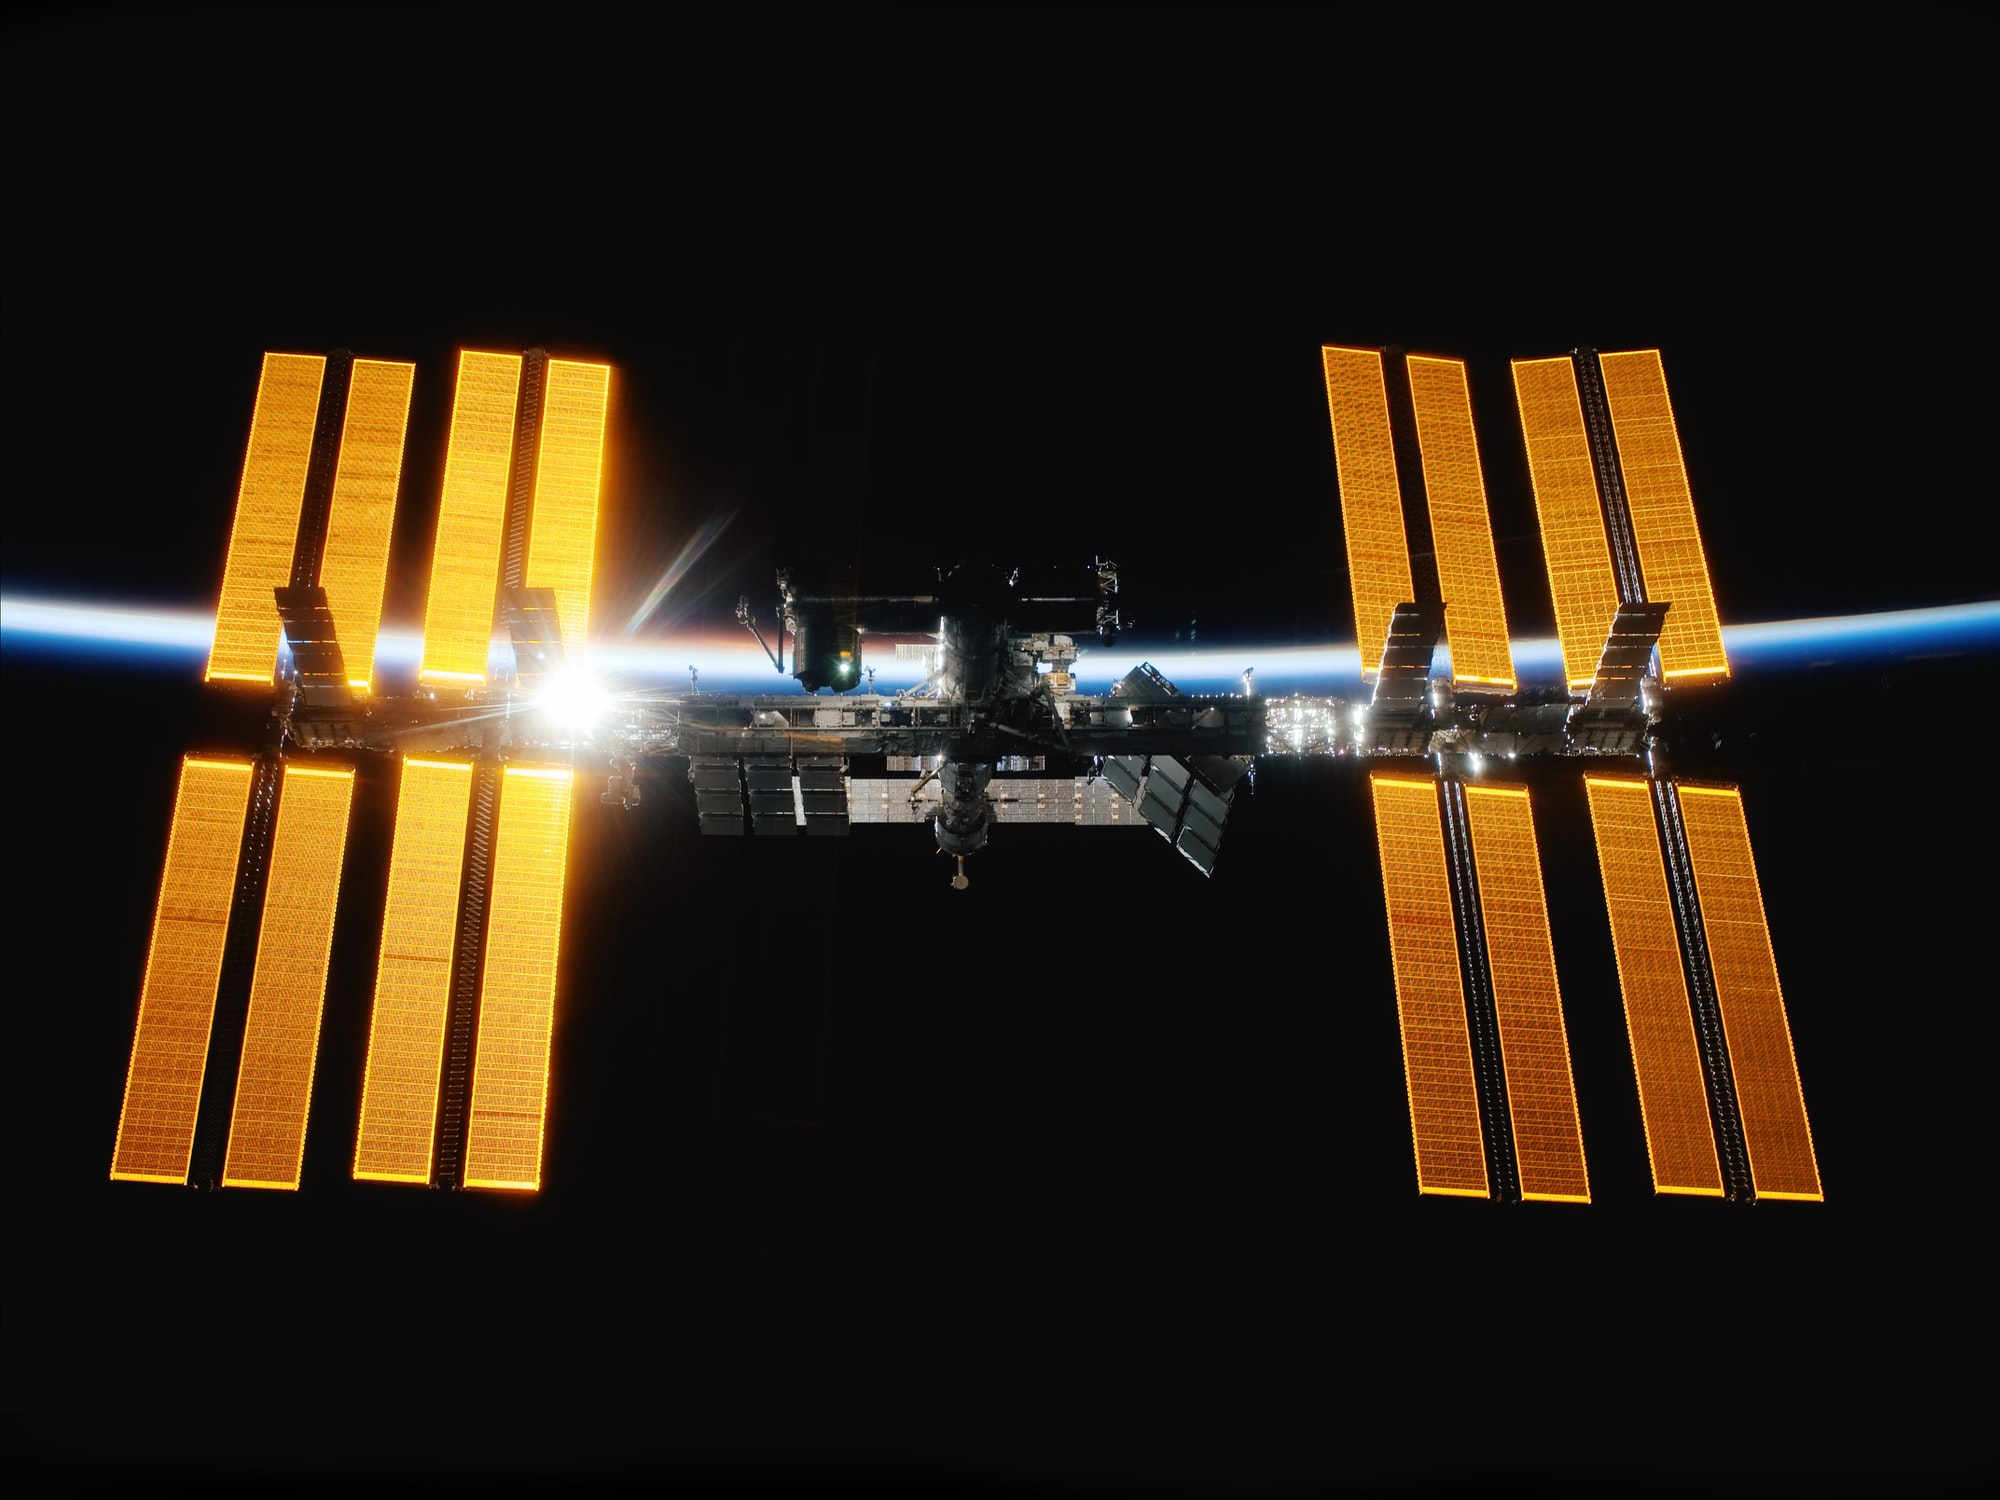 Uncontrolled firing from Russian module causes brief 'tug of war' on International Space Station